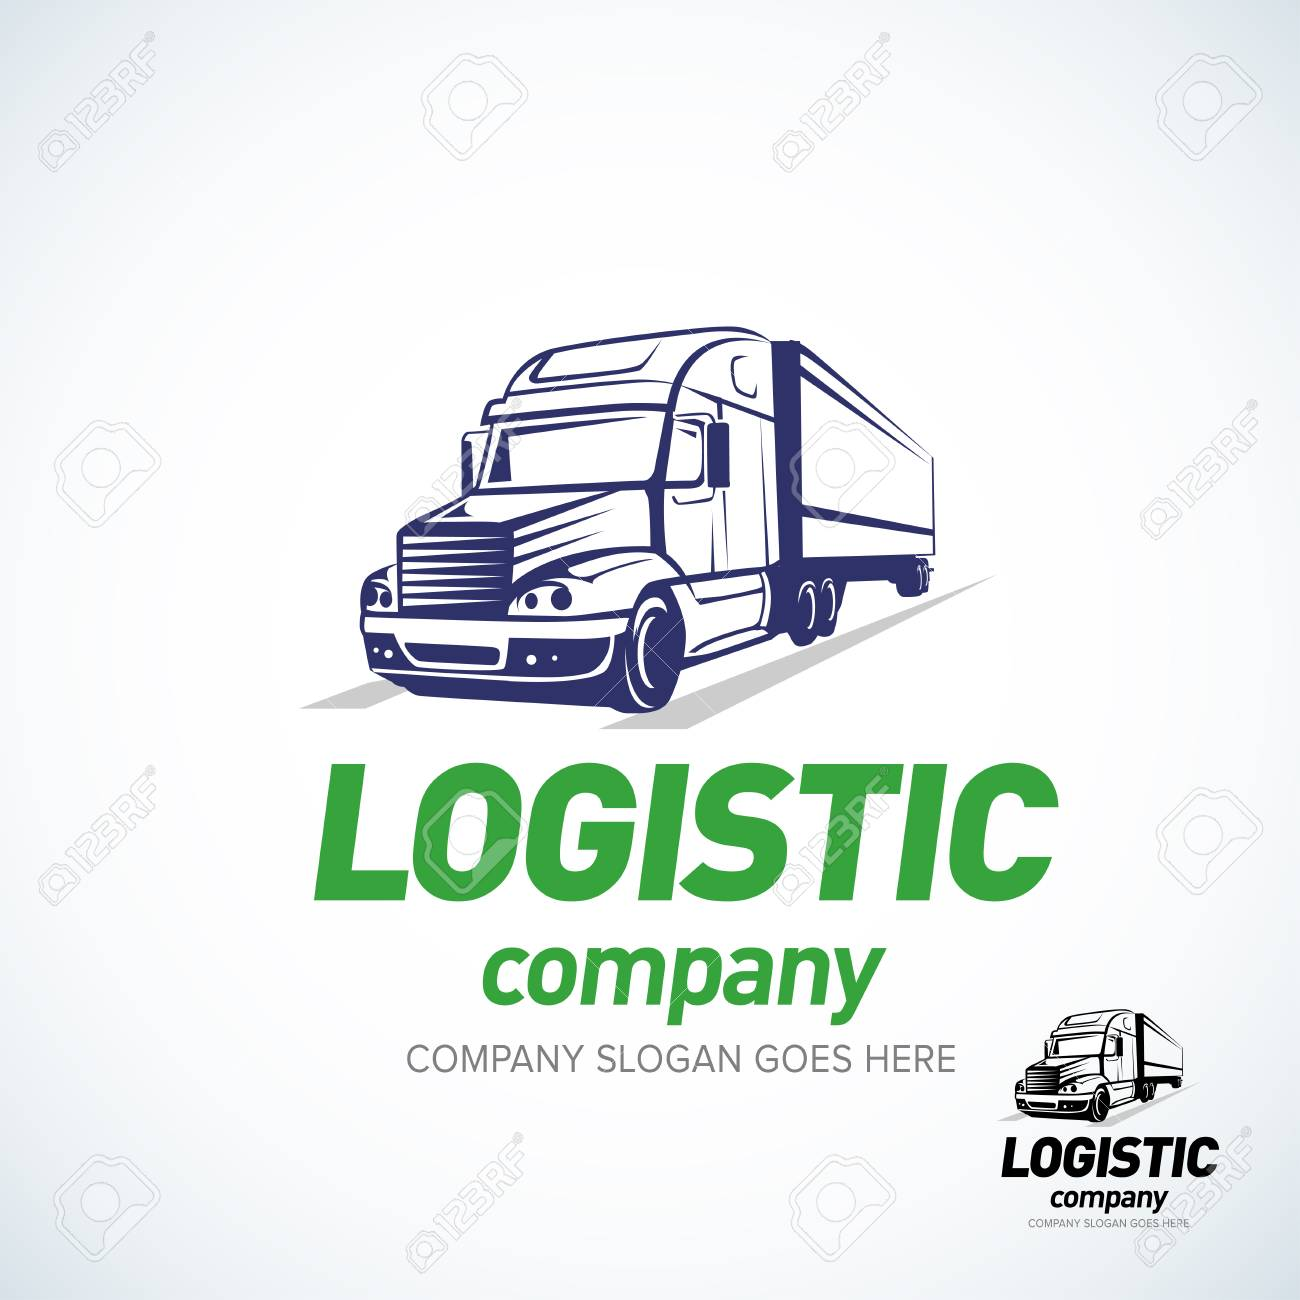 Truck logo template. Logistic truck logo. Isolated vector illustration. - 97180304